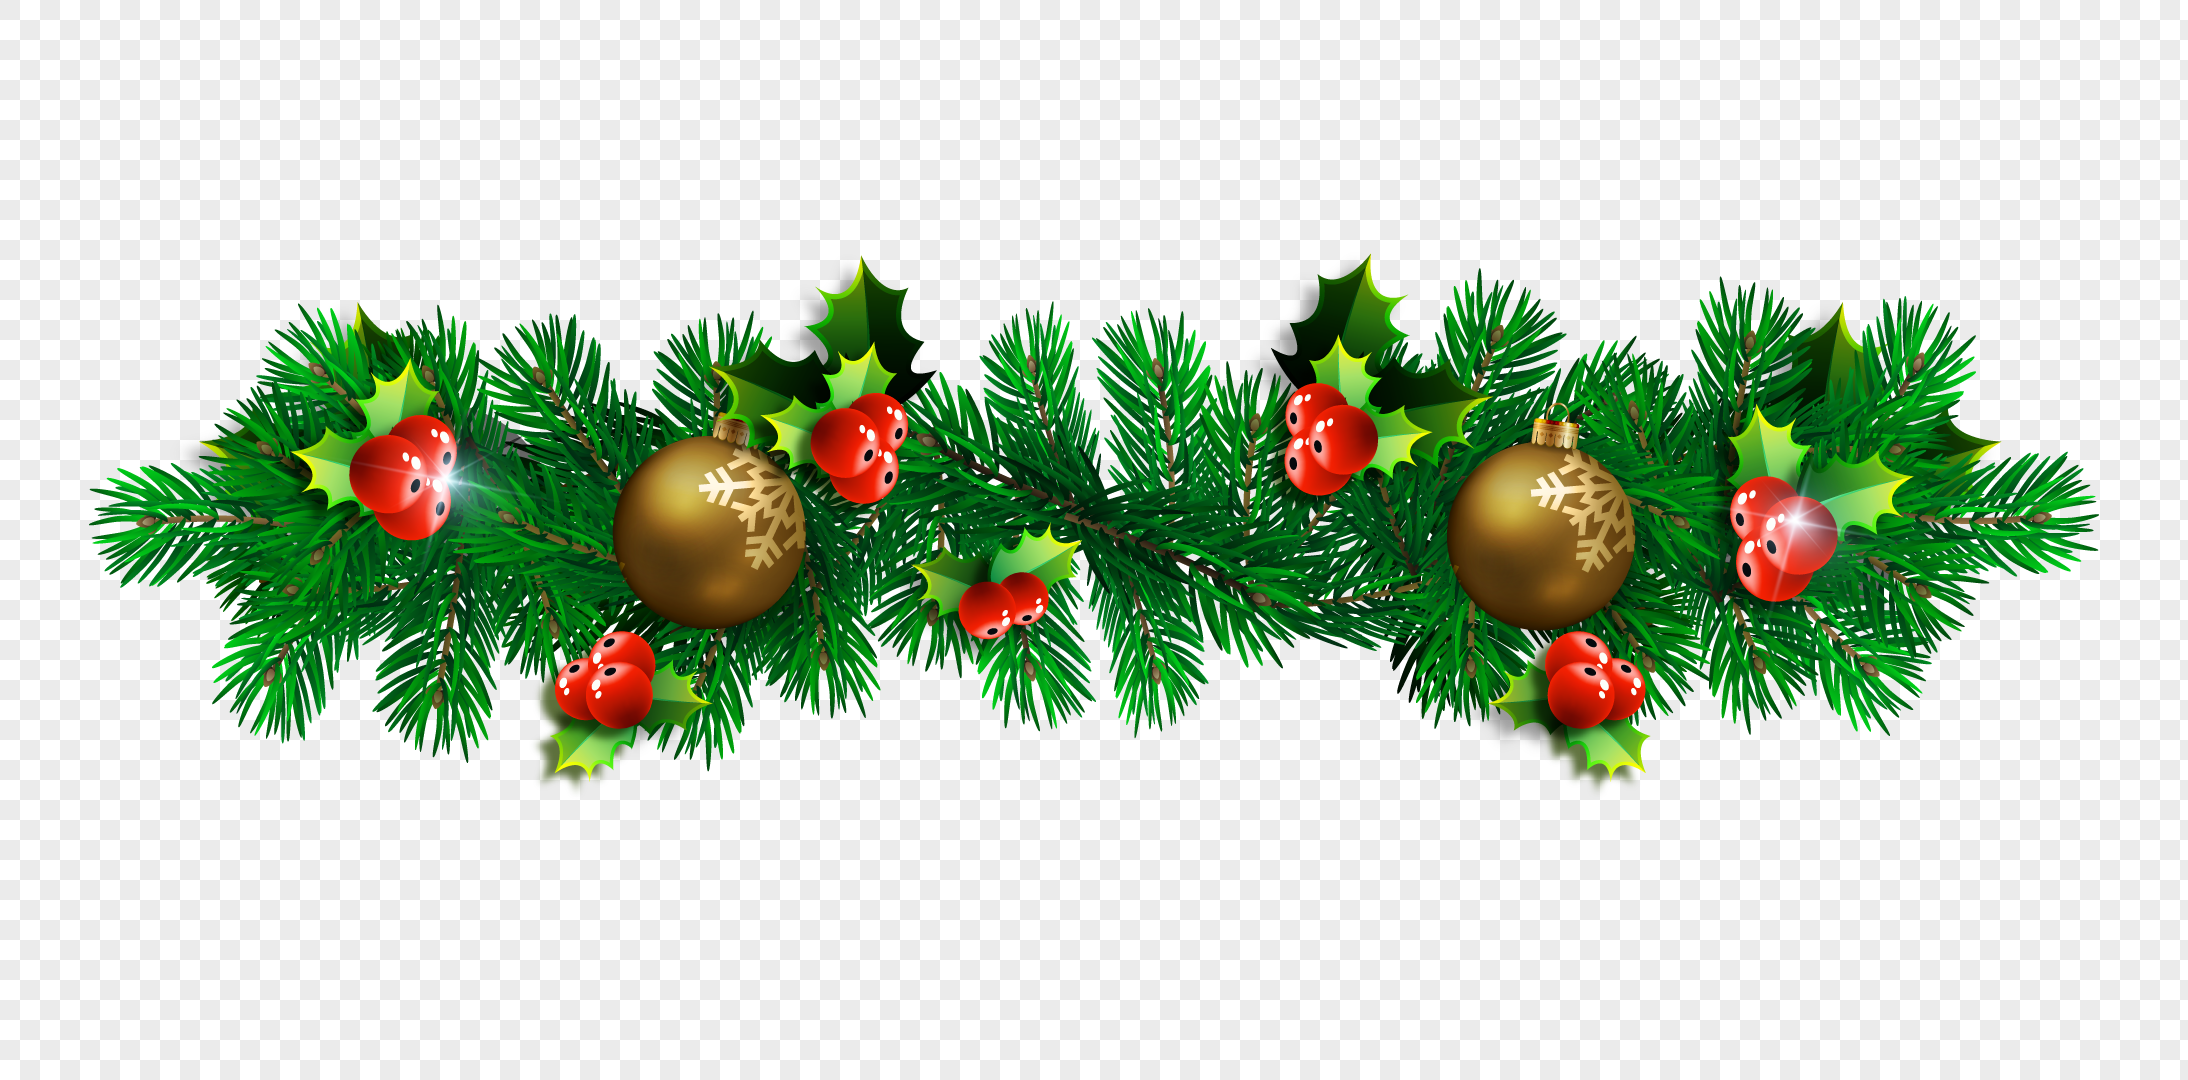 Christmas Decorations Png Image Picture Free Download